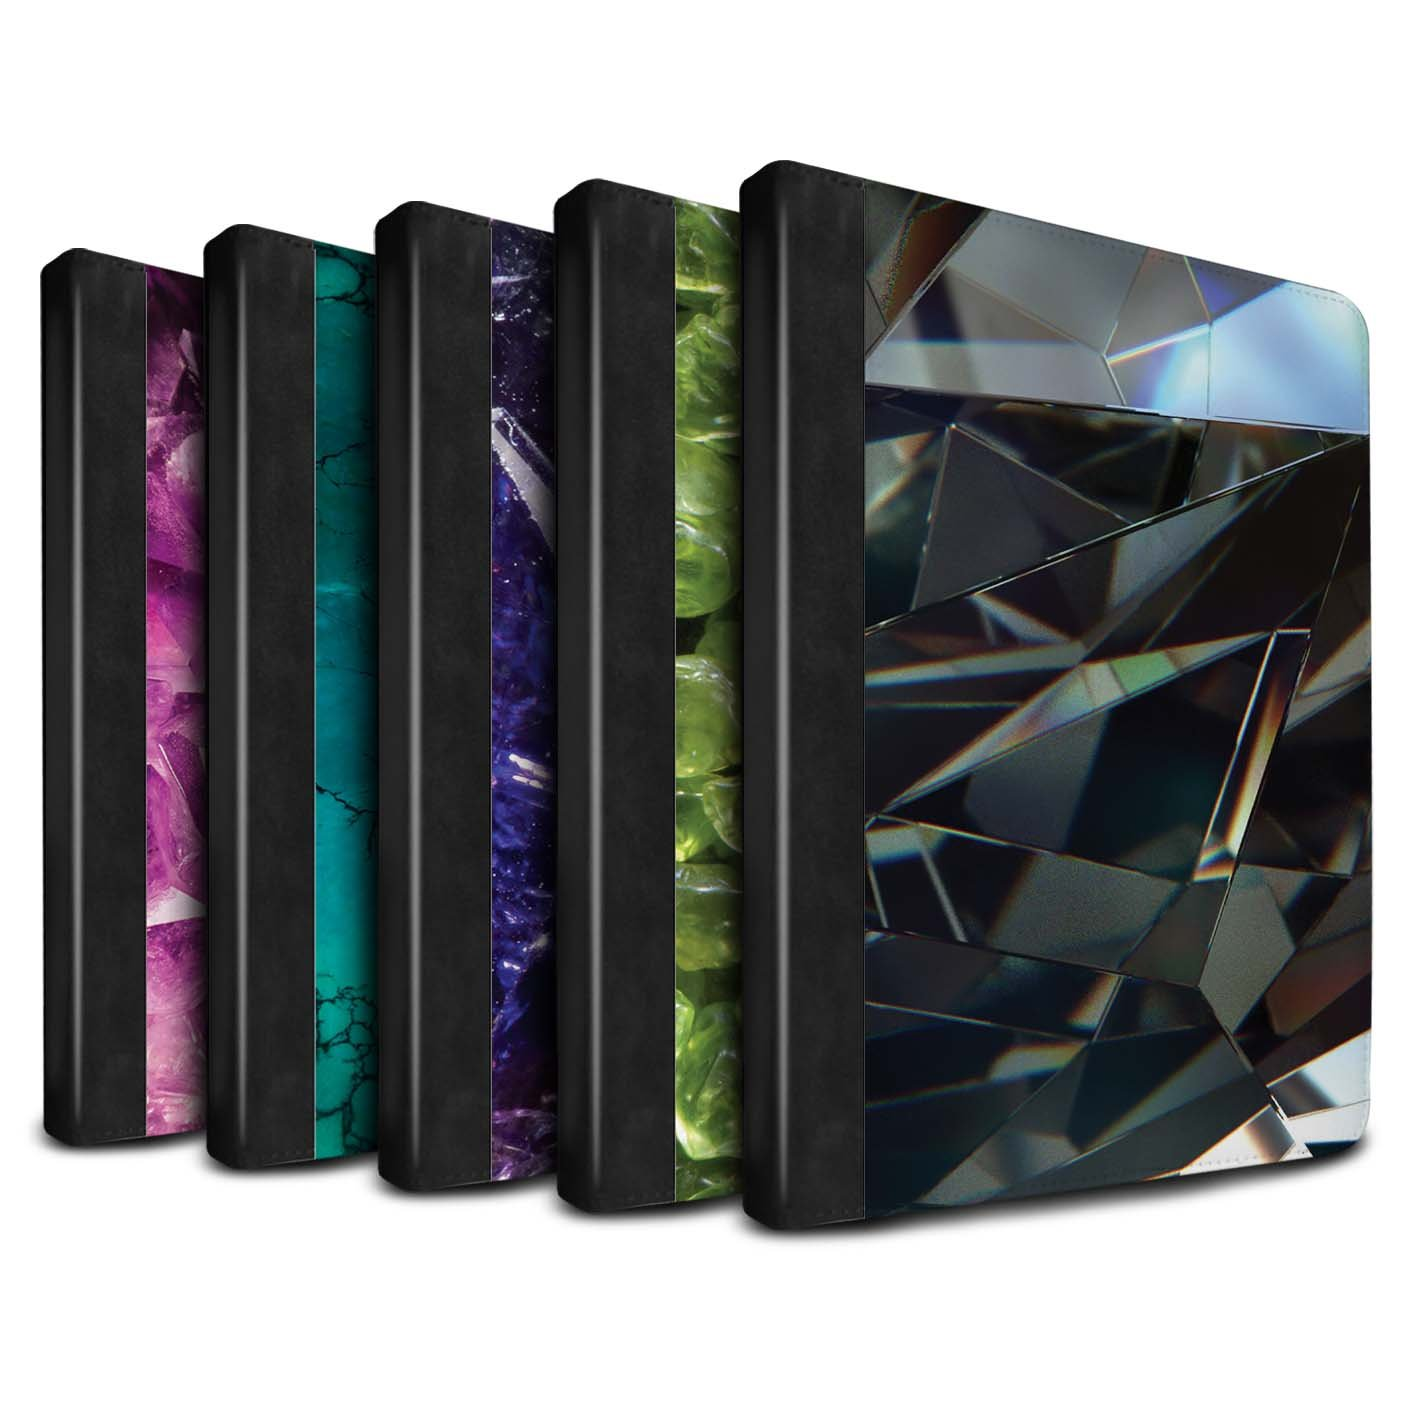 STUFF4 PU Leather Book/Cover Case for Apple iPad 2/3/4 tablets / Pack 19pcs Design / Birth/Gemstone Collection